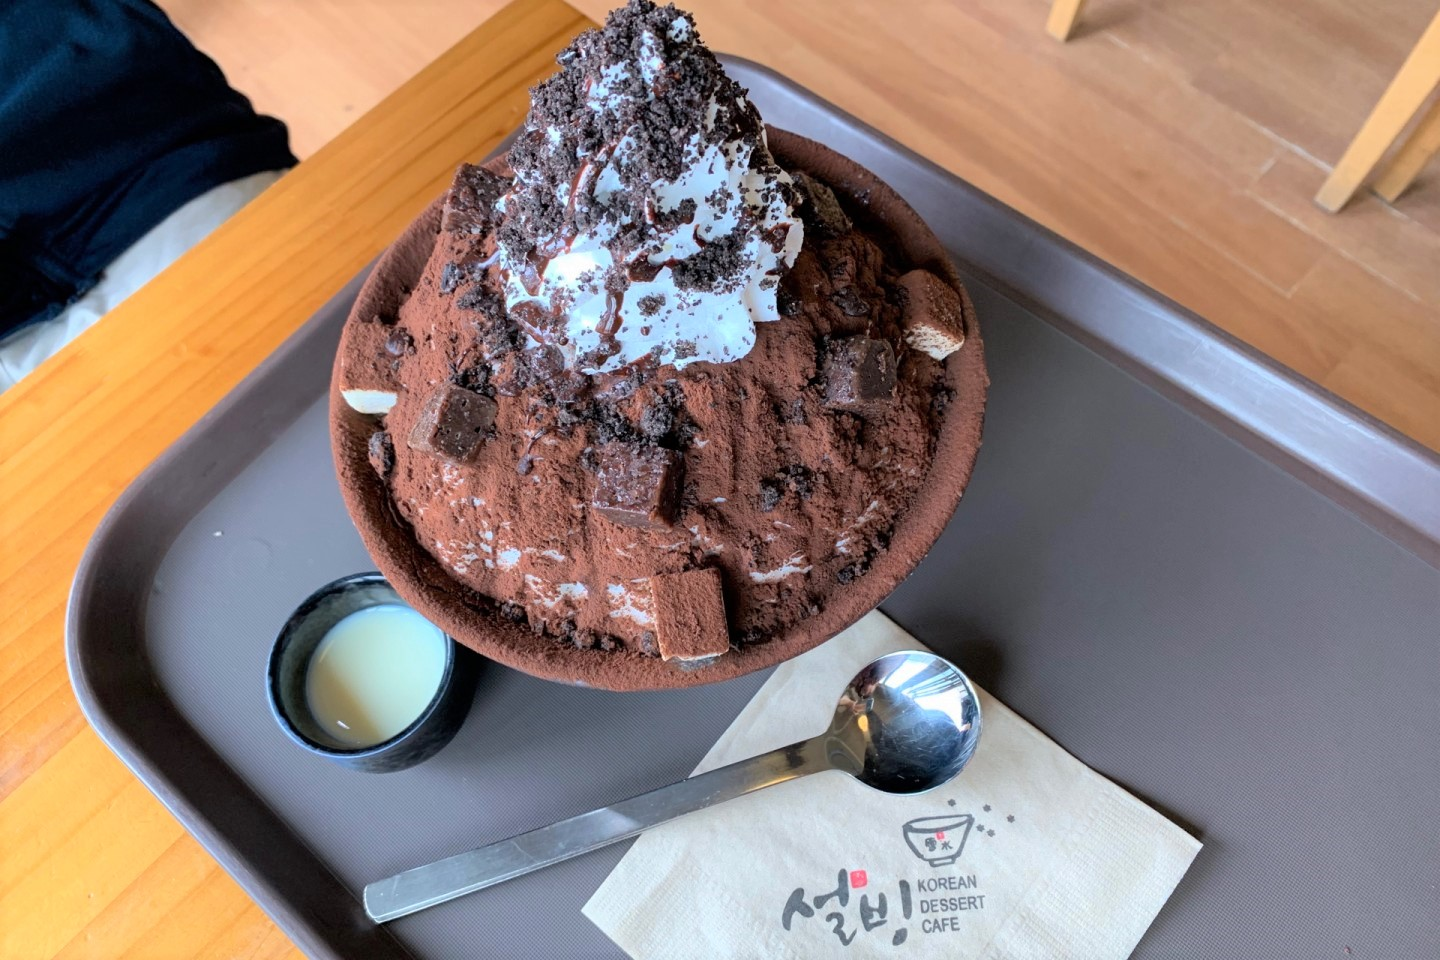 韓國雪冰 설빙 Korean Dessert Cafe